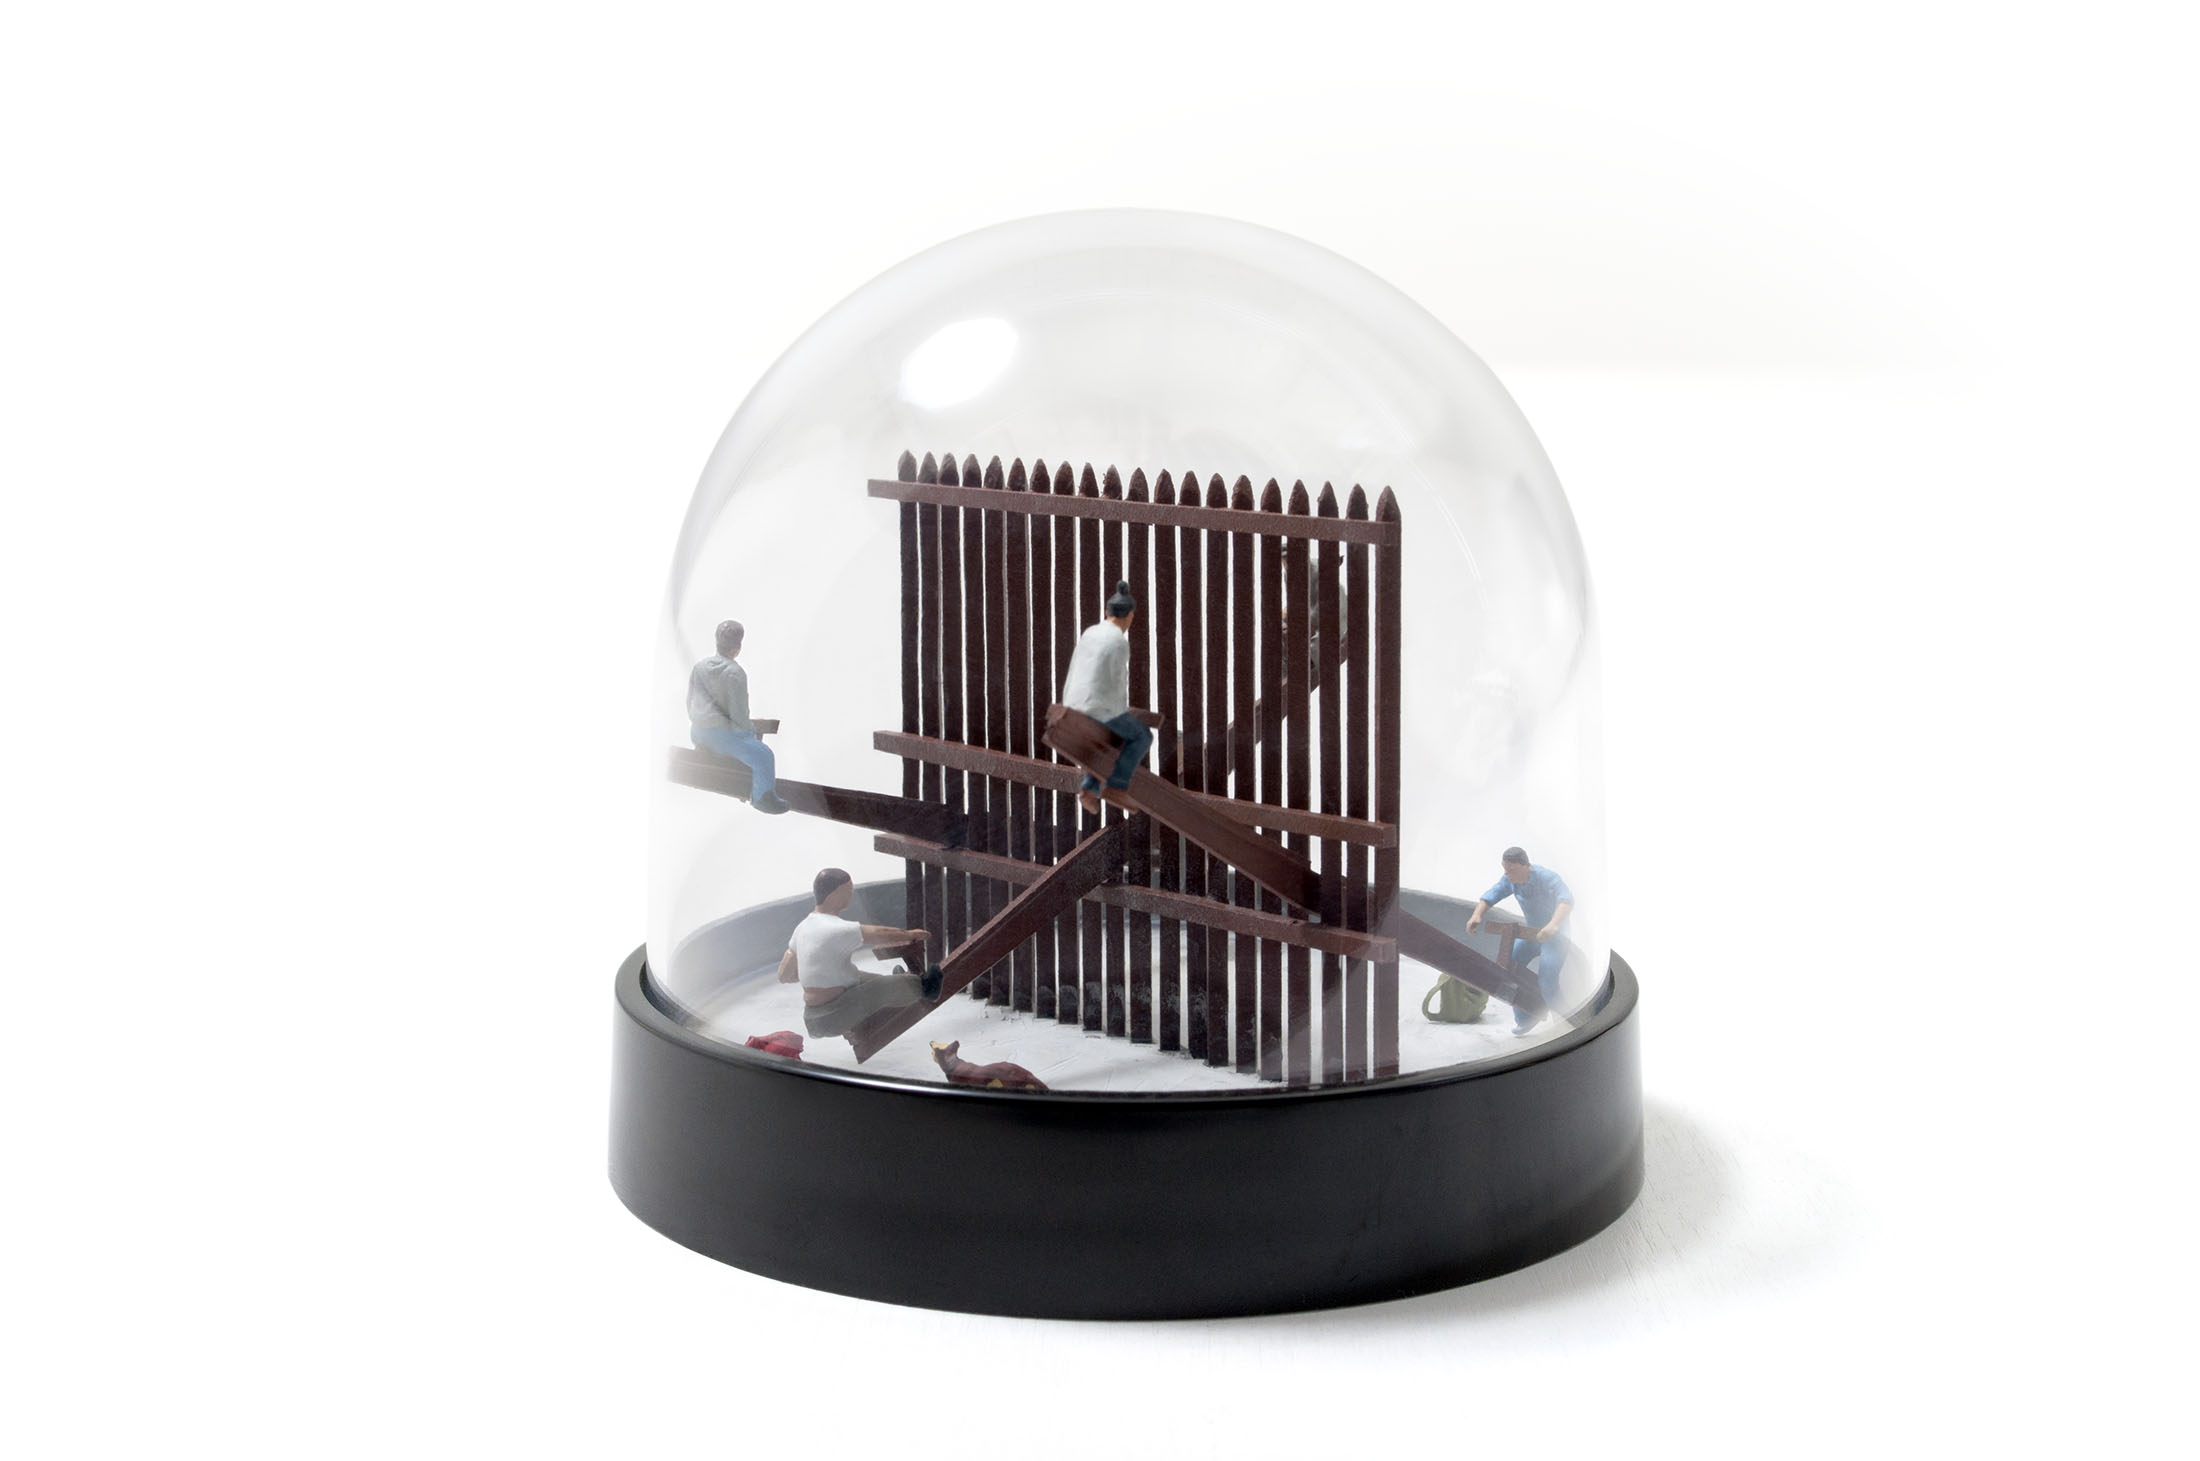 A conceptual snow globe rendition of the